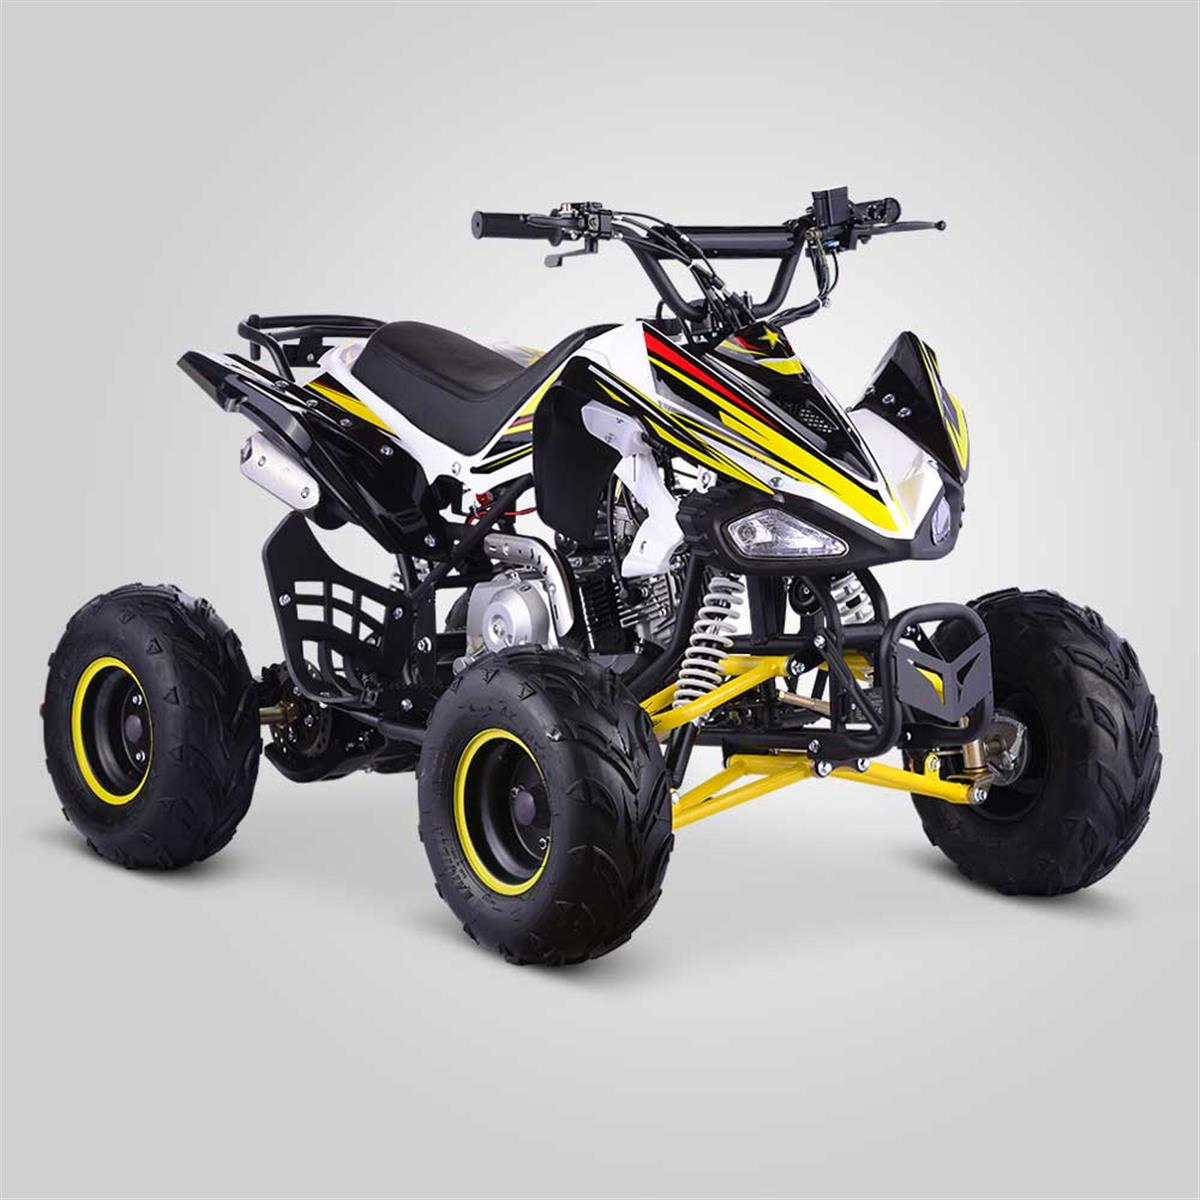 quad enfant typhon 110cc jaune smallmx dirt bike pit bike quads minimoto. Black Bedroom Furniture Sets. Home Design Ideas